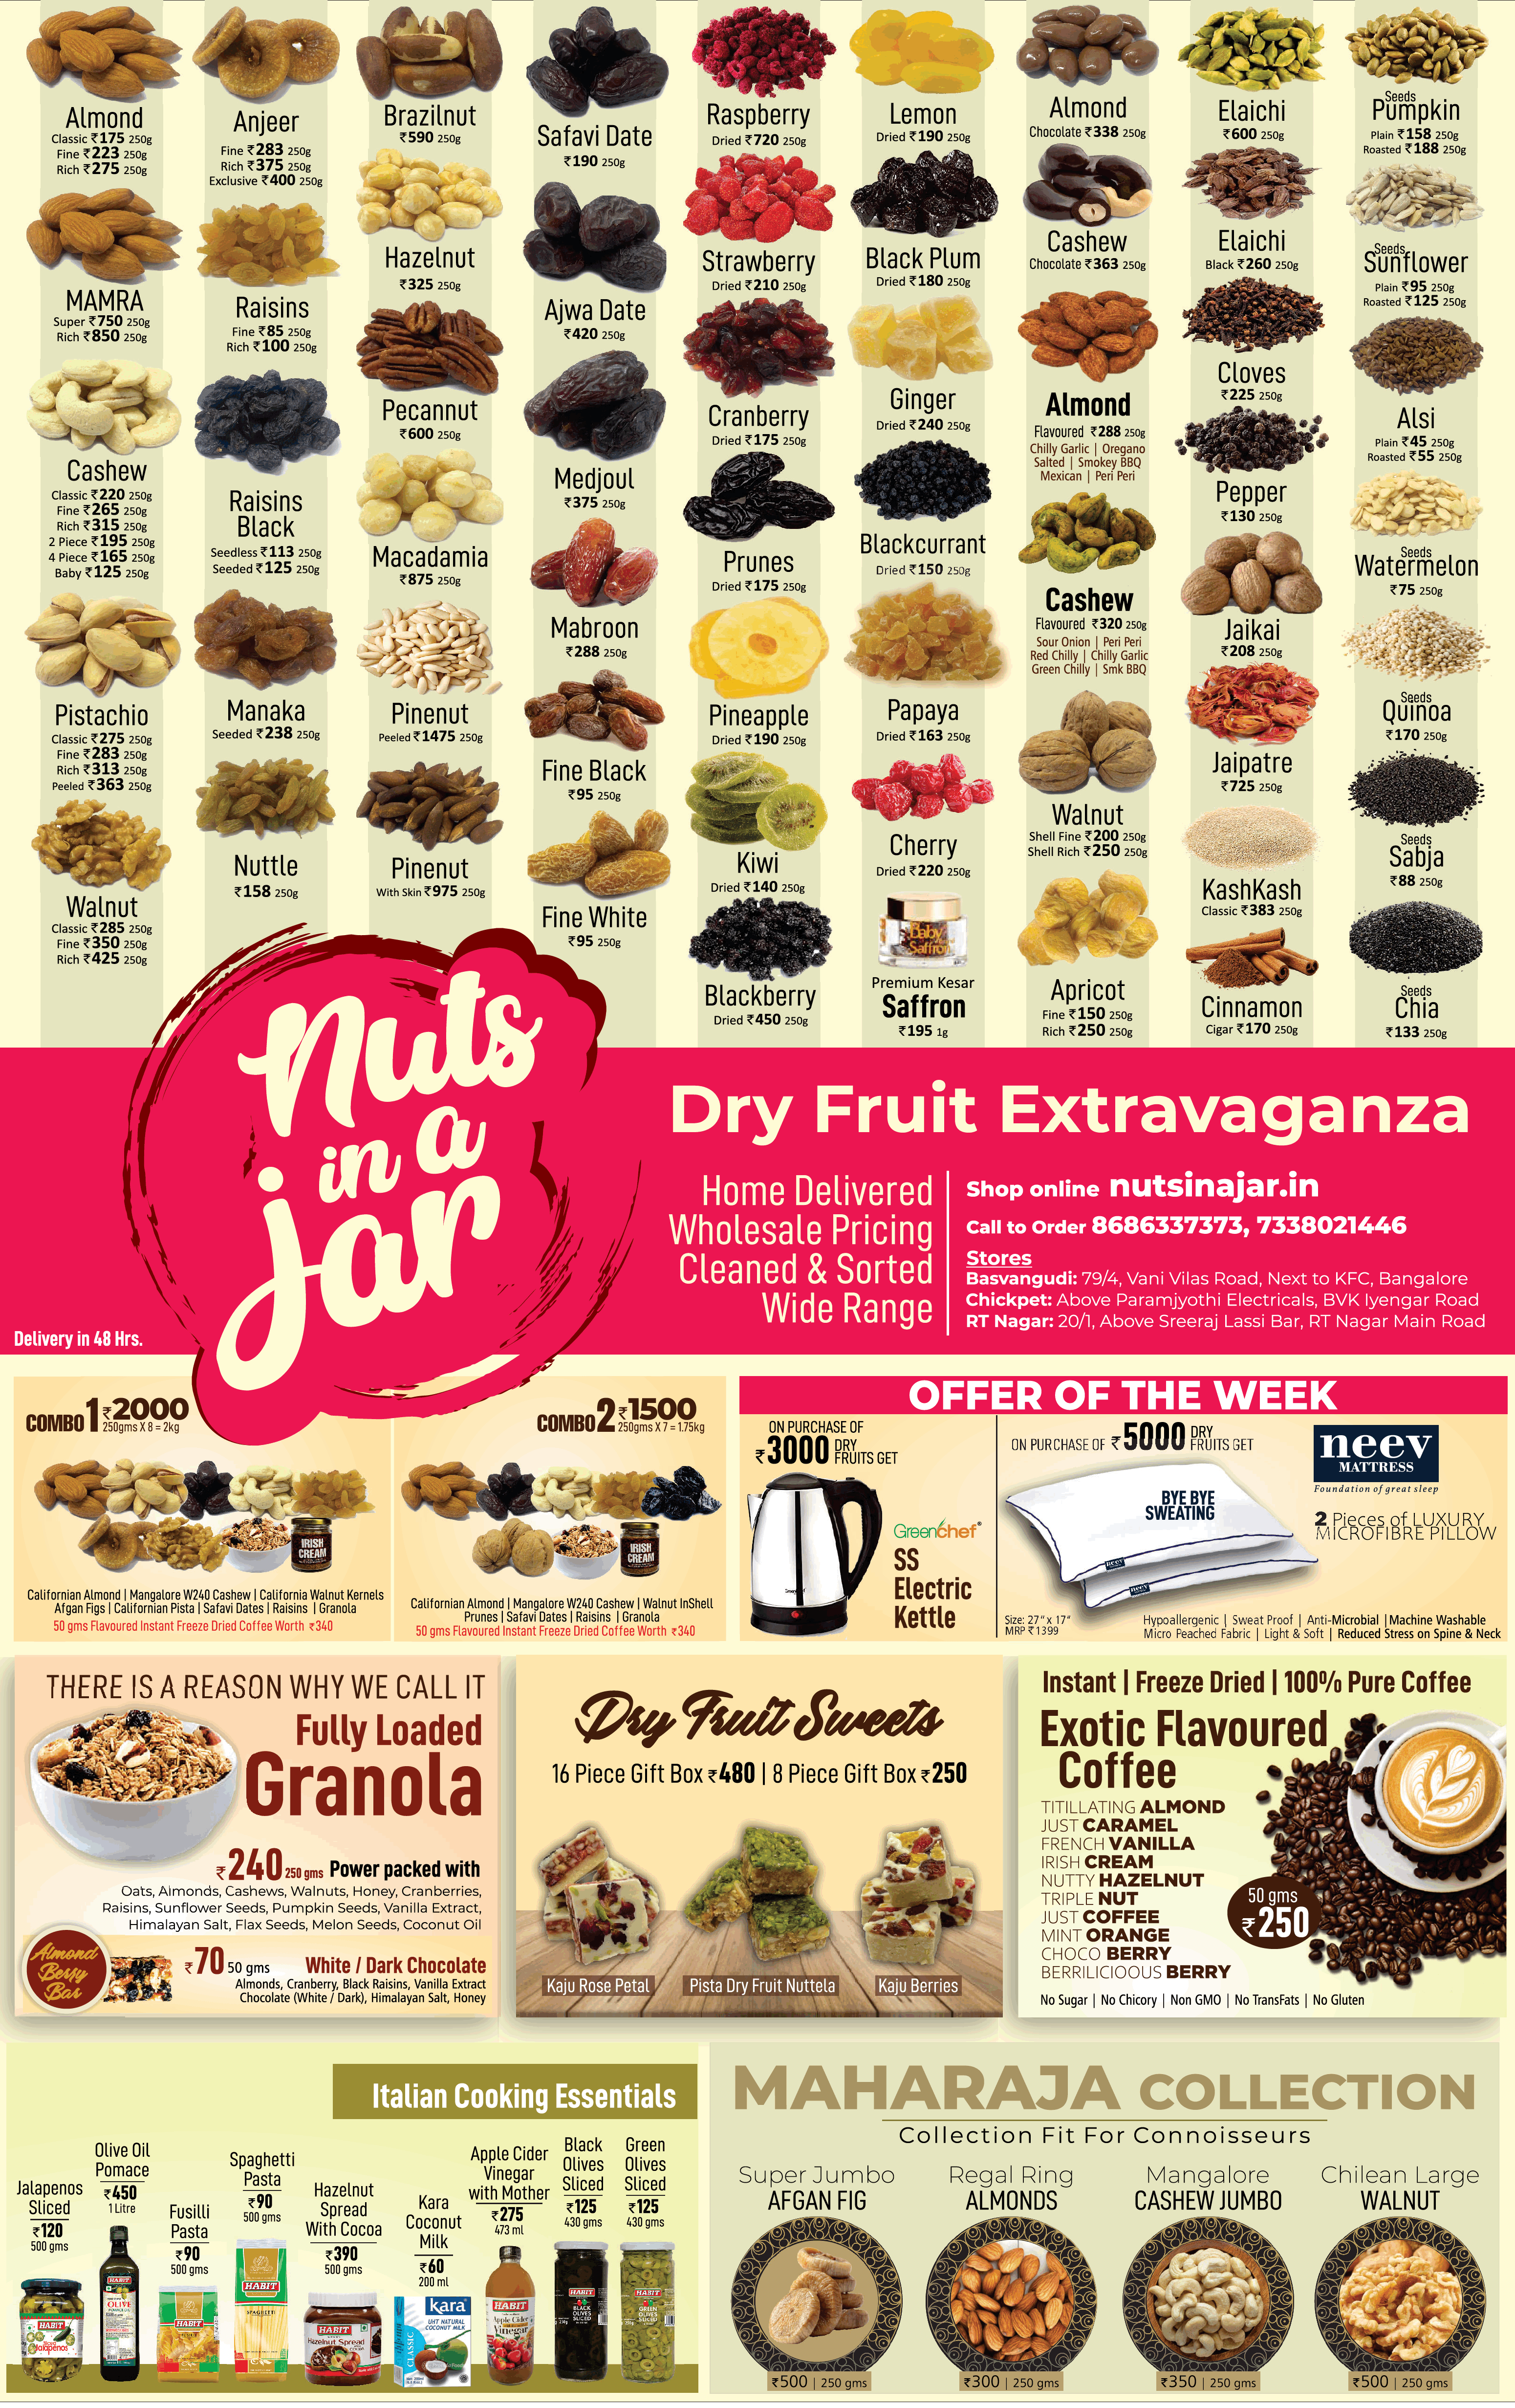 nuts-in-a-jar-dry-fruit-extravaganza-home-delivered-wholesale-pricing-ad-toi-mumbai-11-7-2021